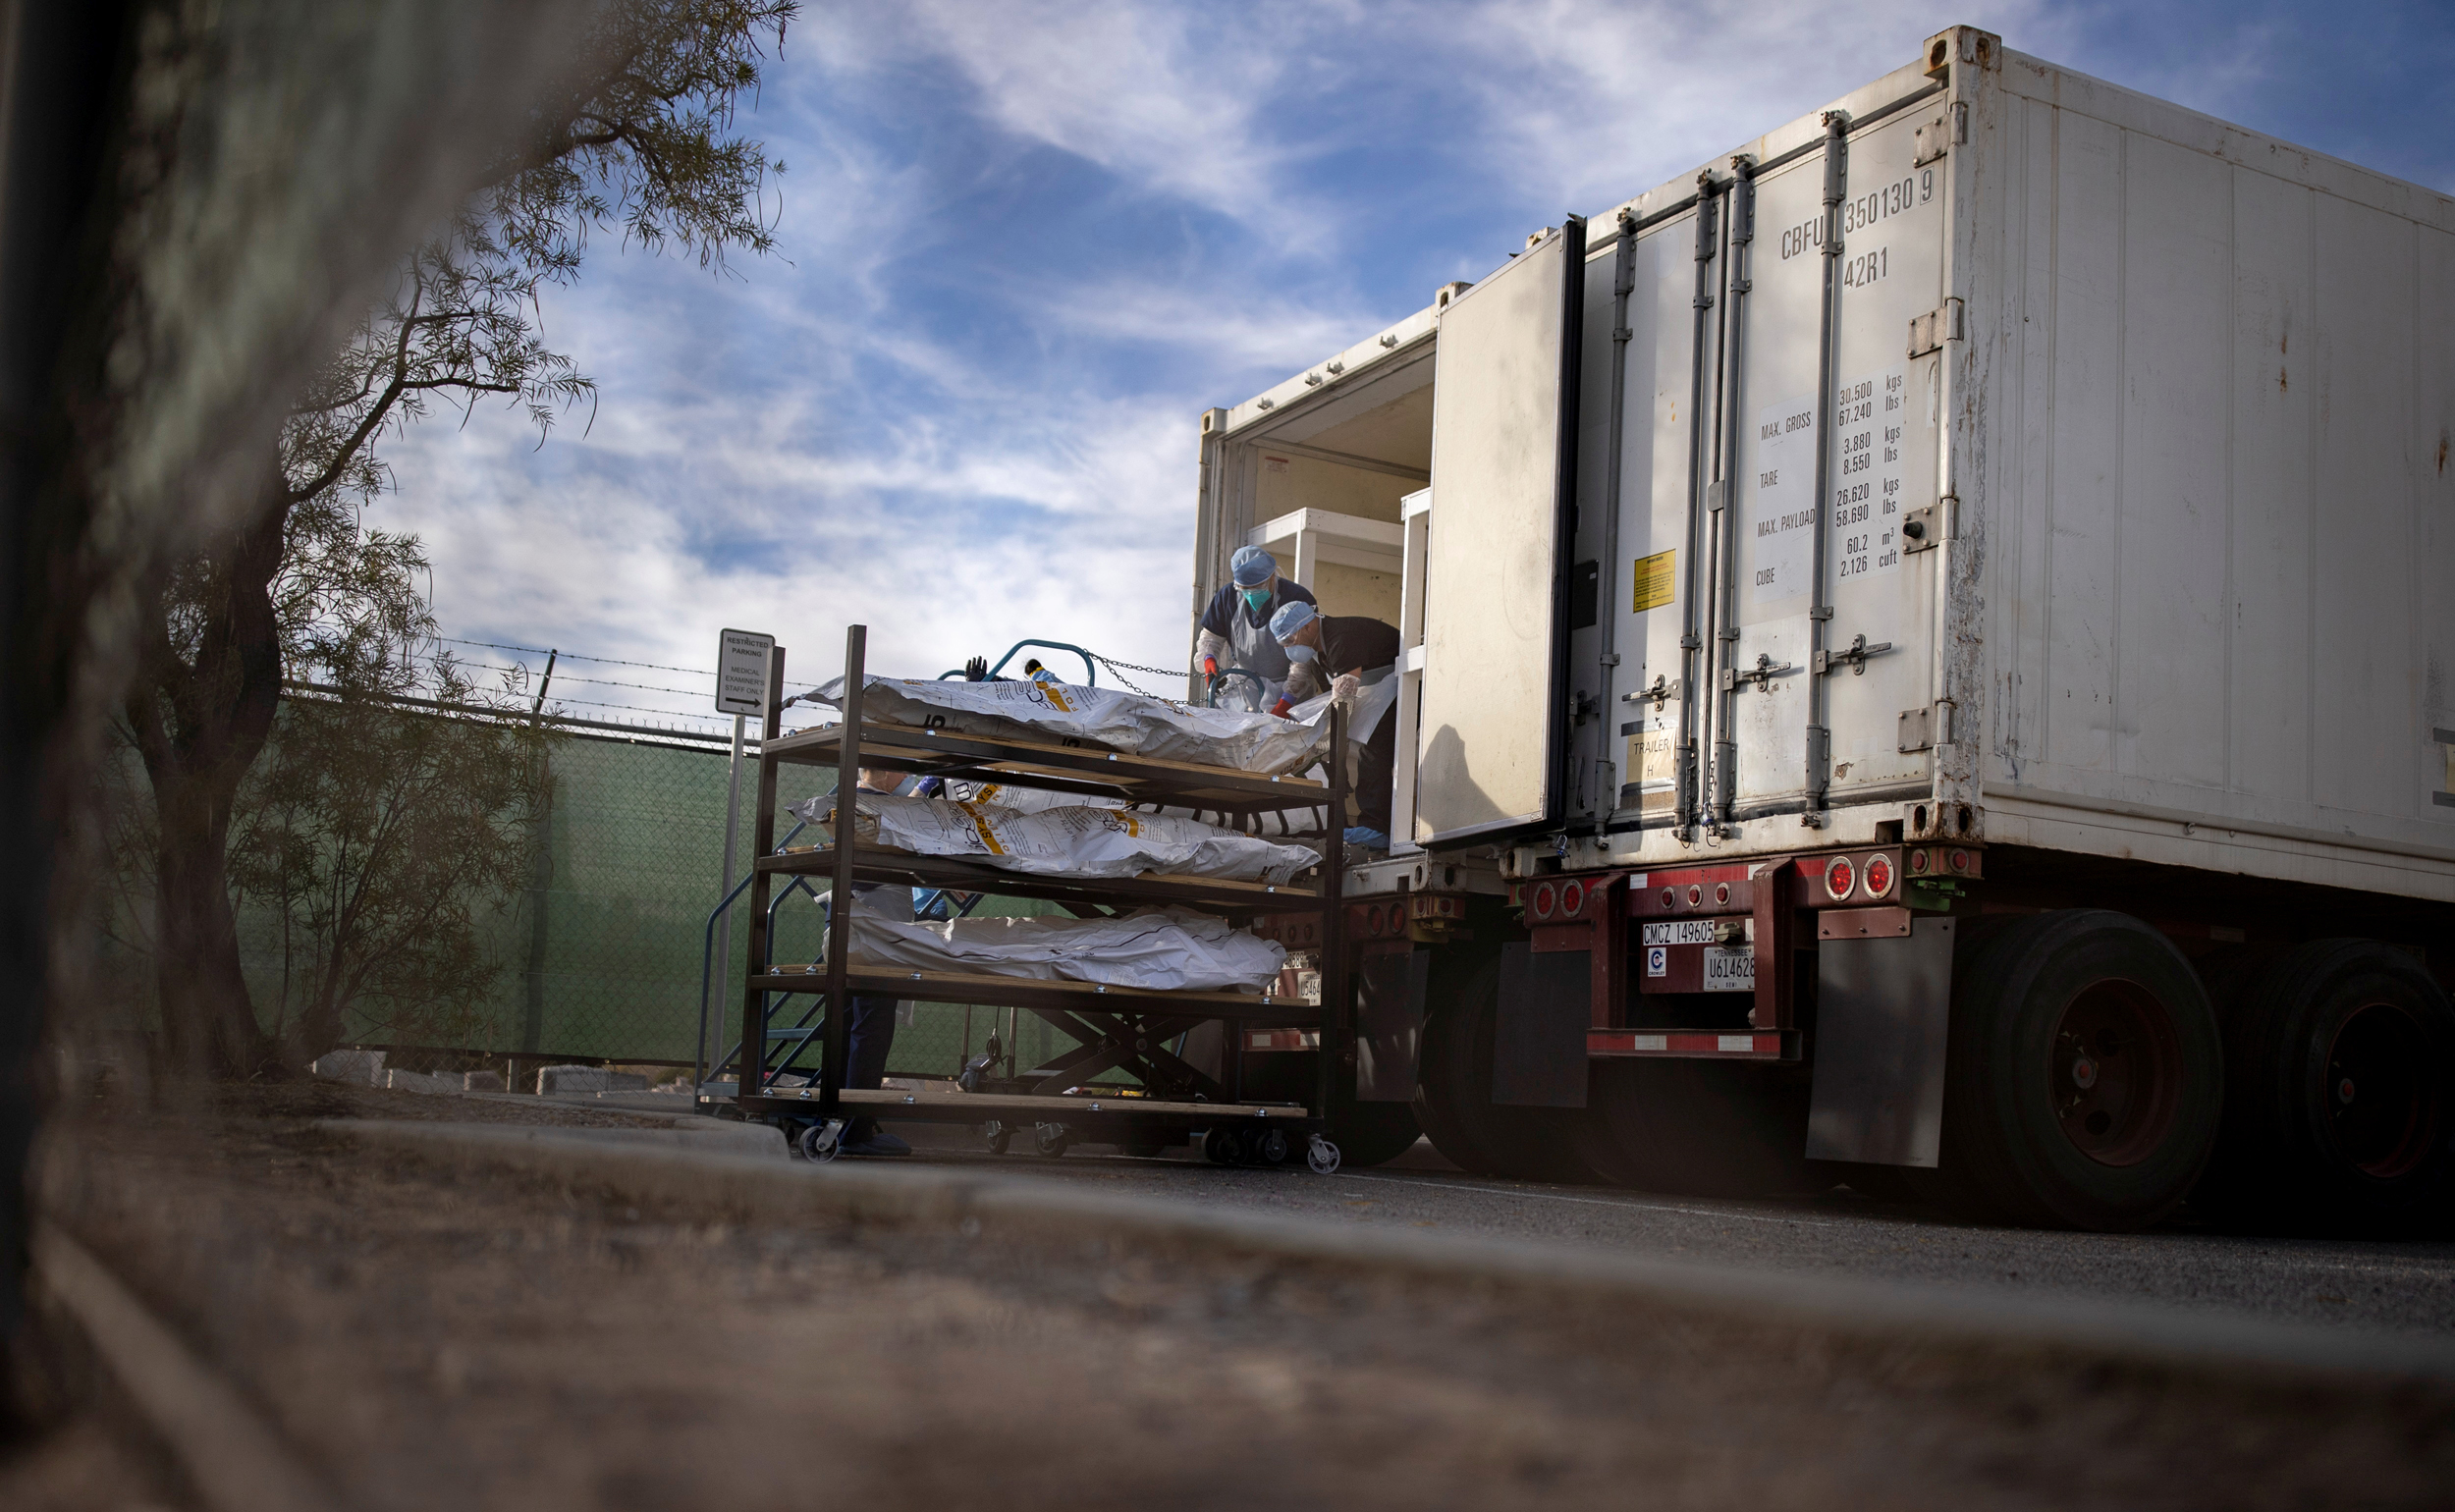 Texas requests five mortuary trailers in anticipation of Covid deaths